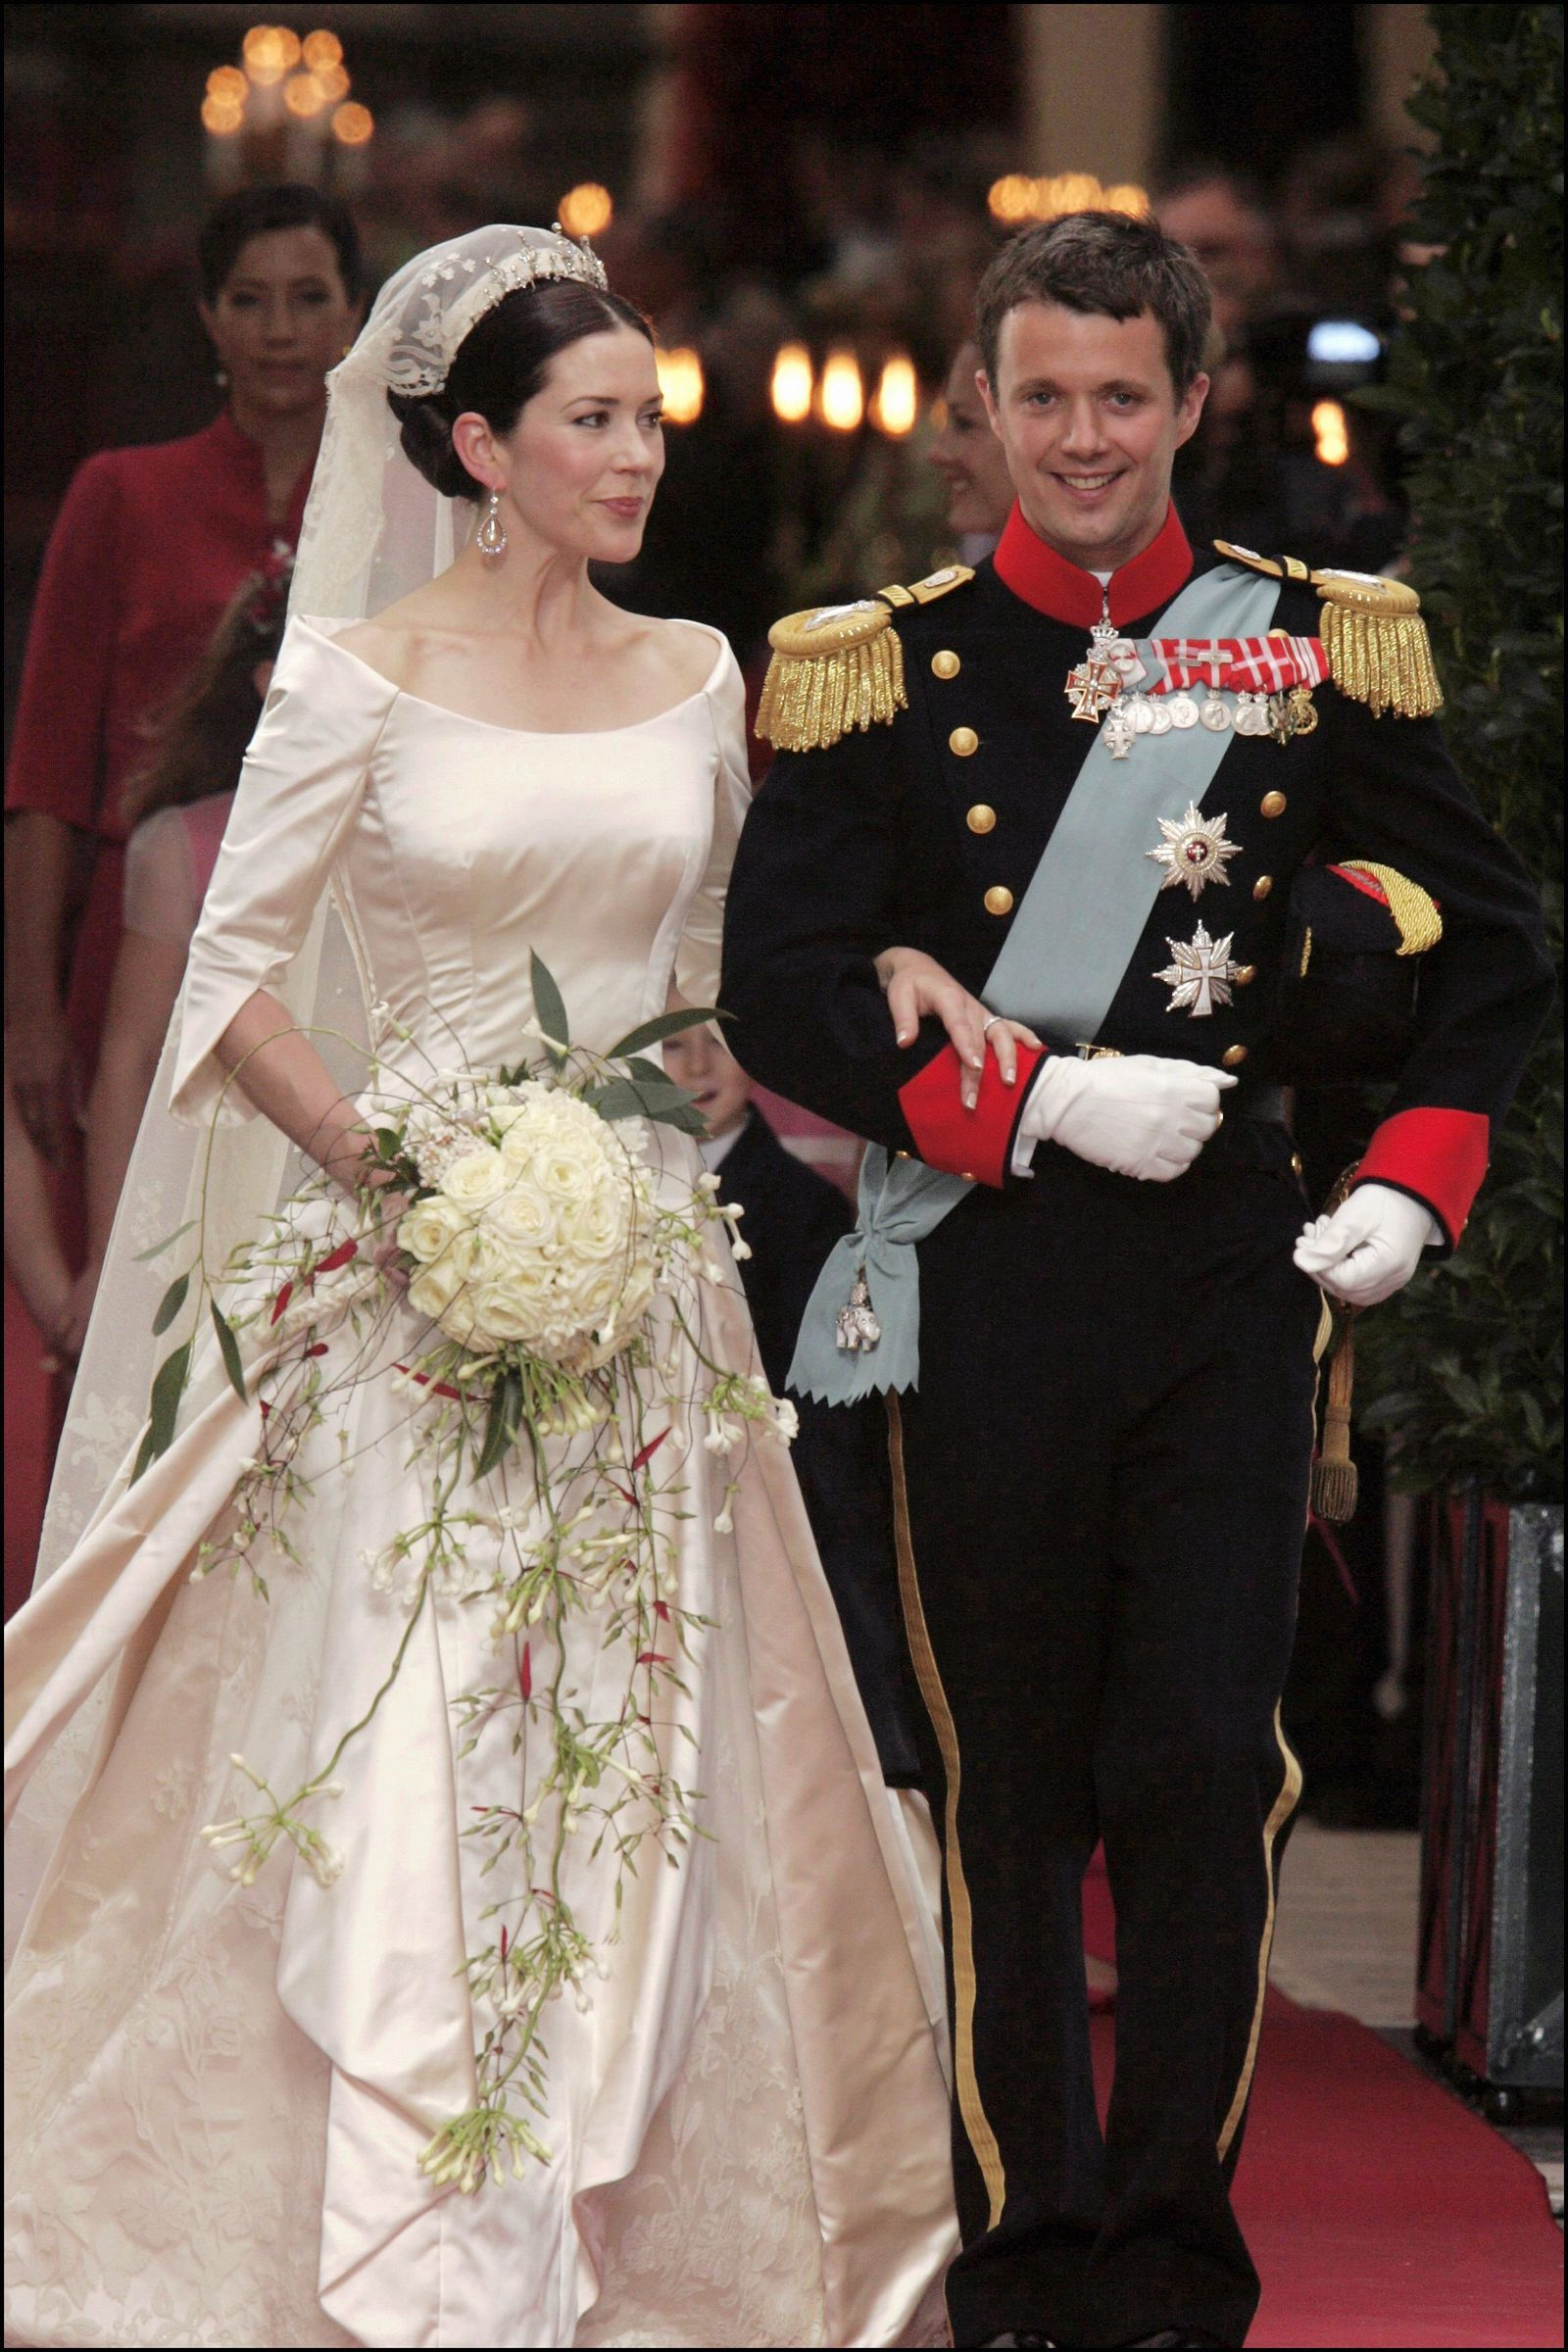 What Our Favorite Royal Brides Wore On Their Wedding Days Royal Wedding Dress Royal Brides Princess Mary [ 2400 x 1600 Pixel ]